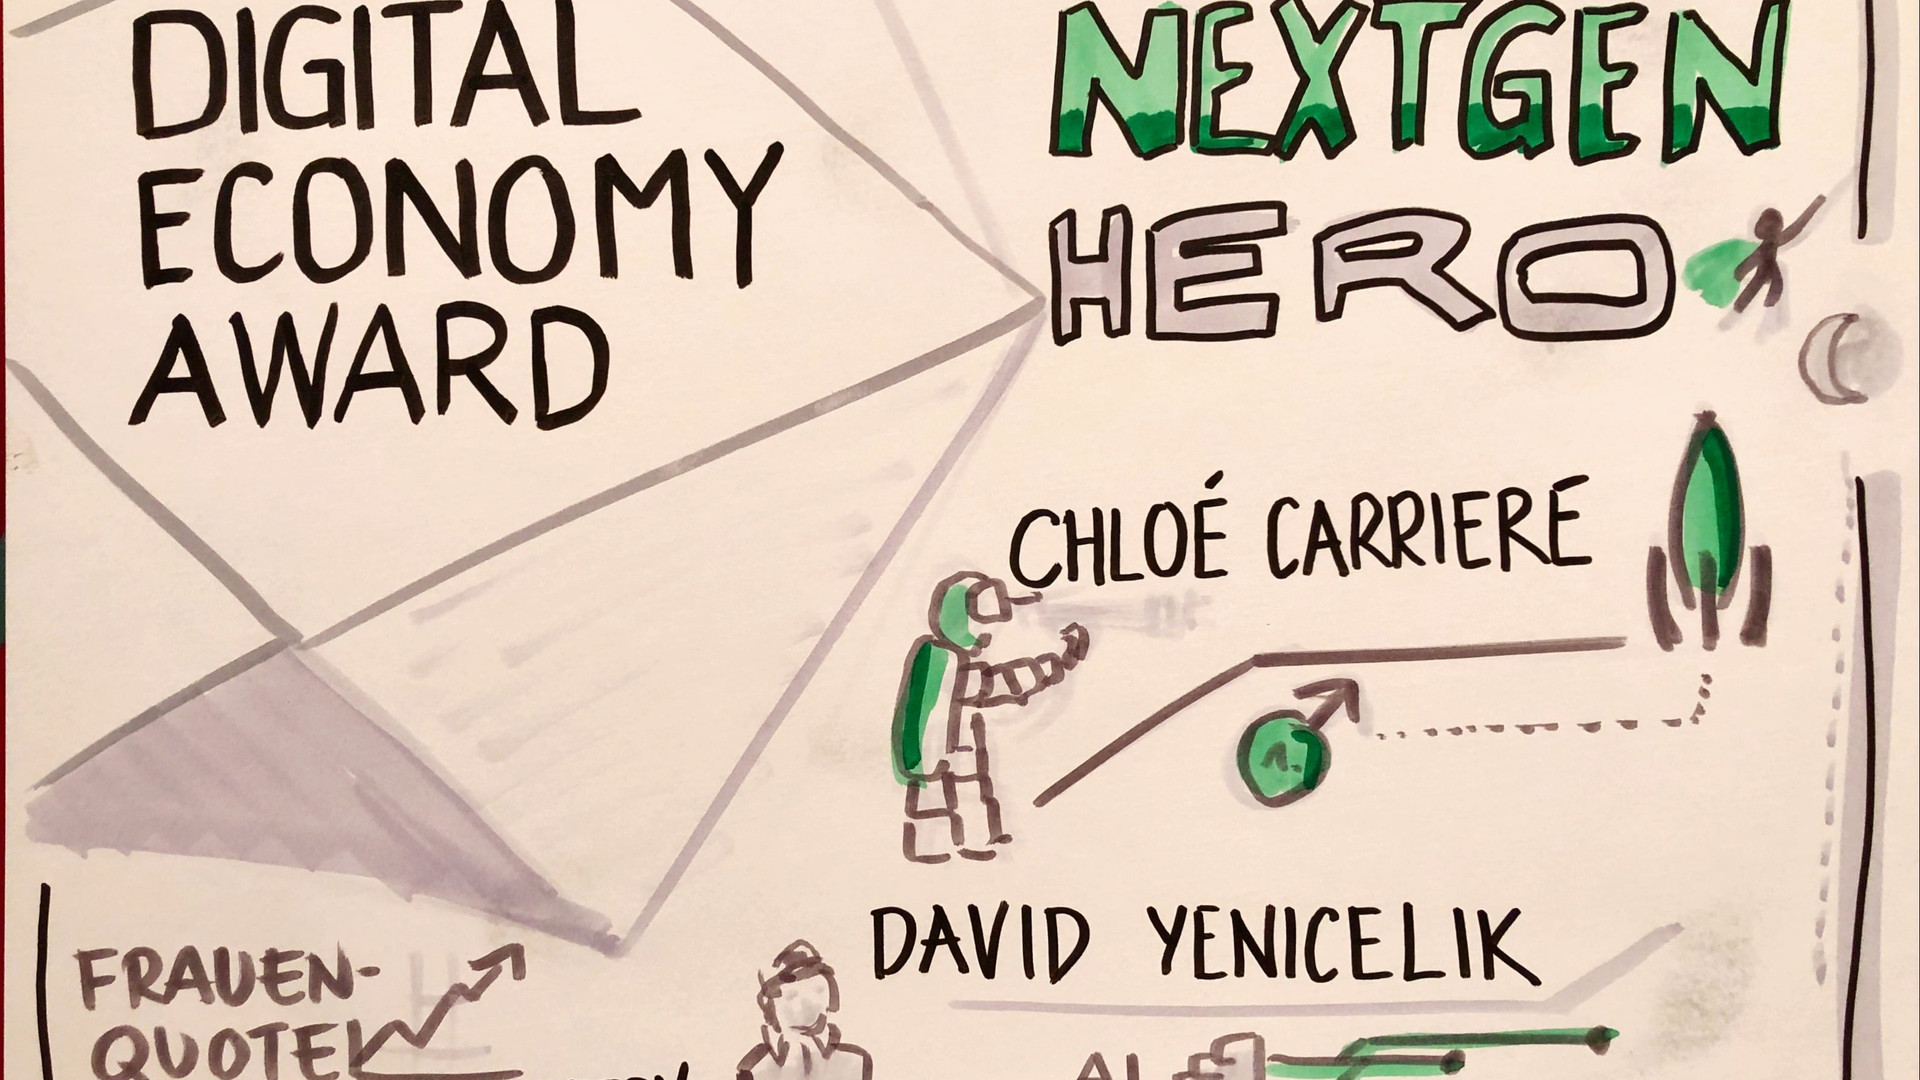 digital economy award live illustration.